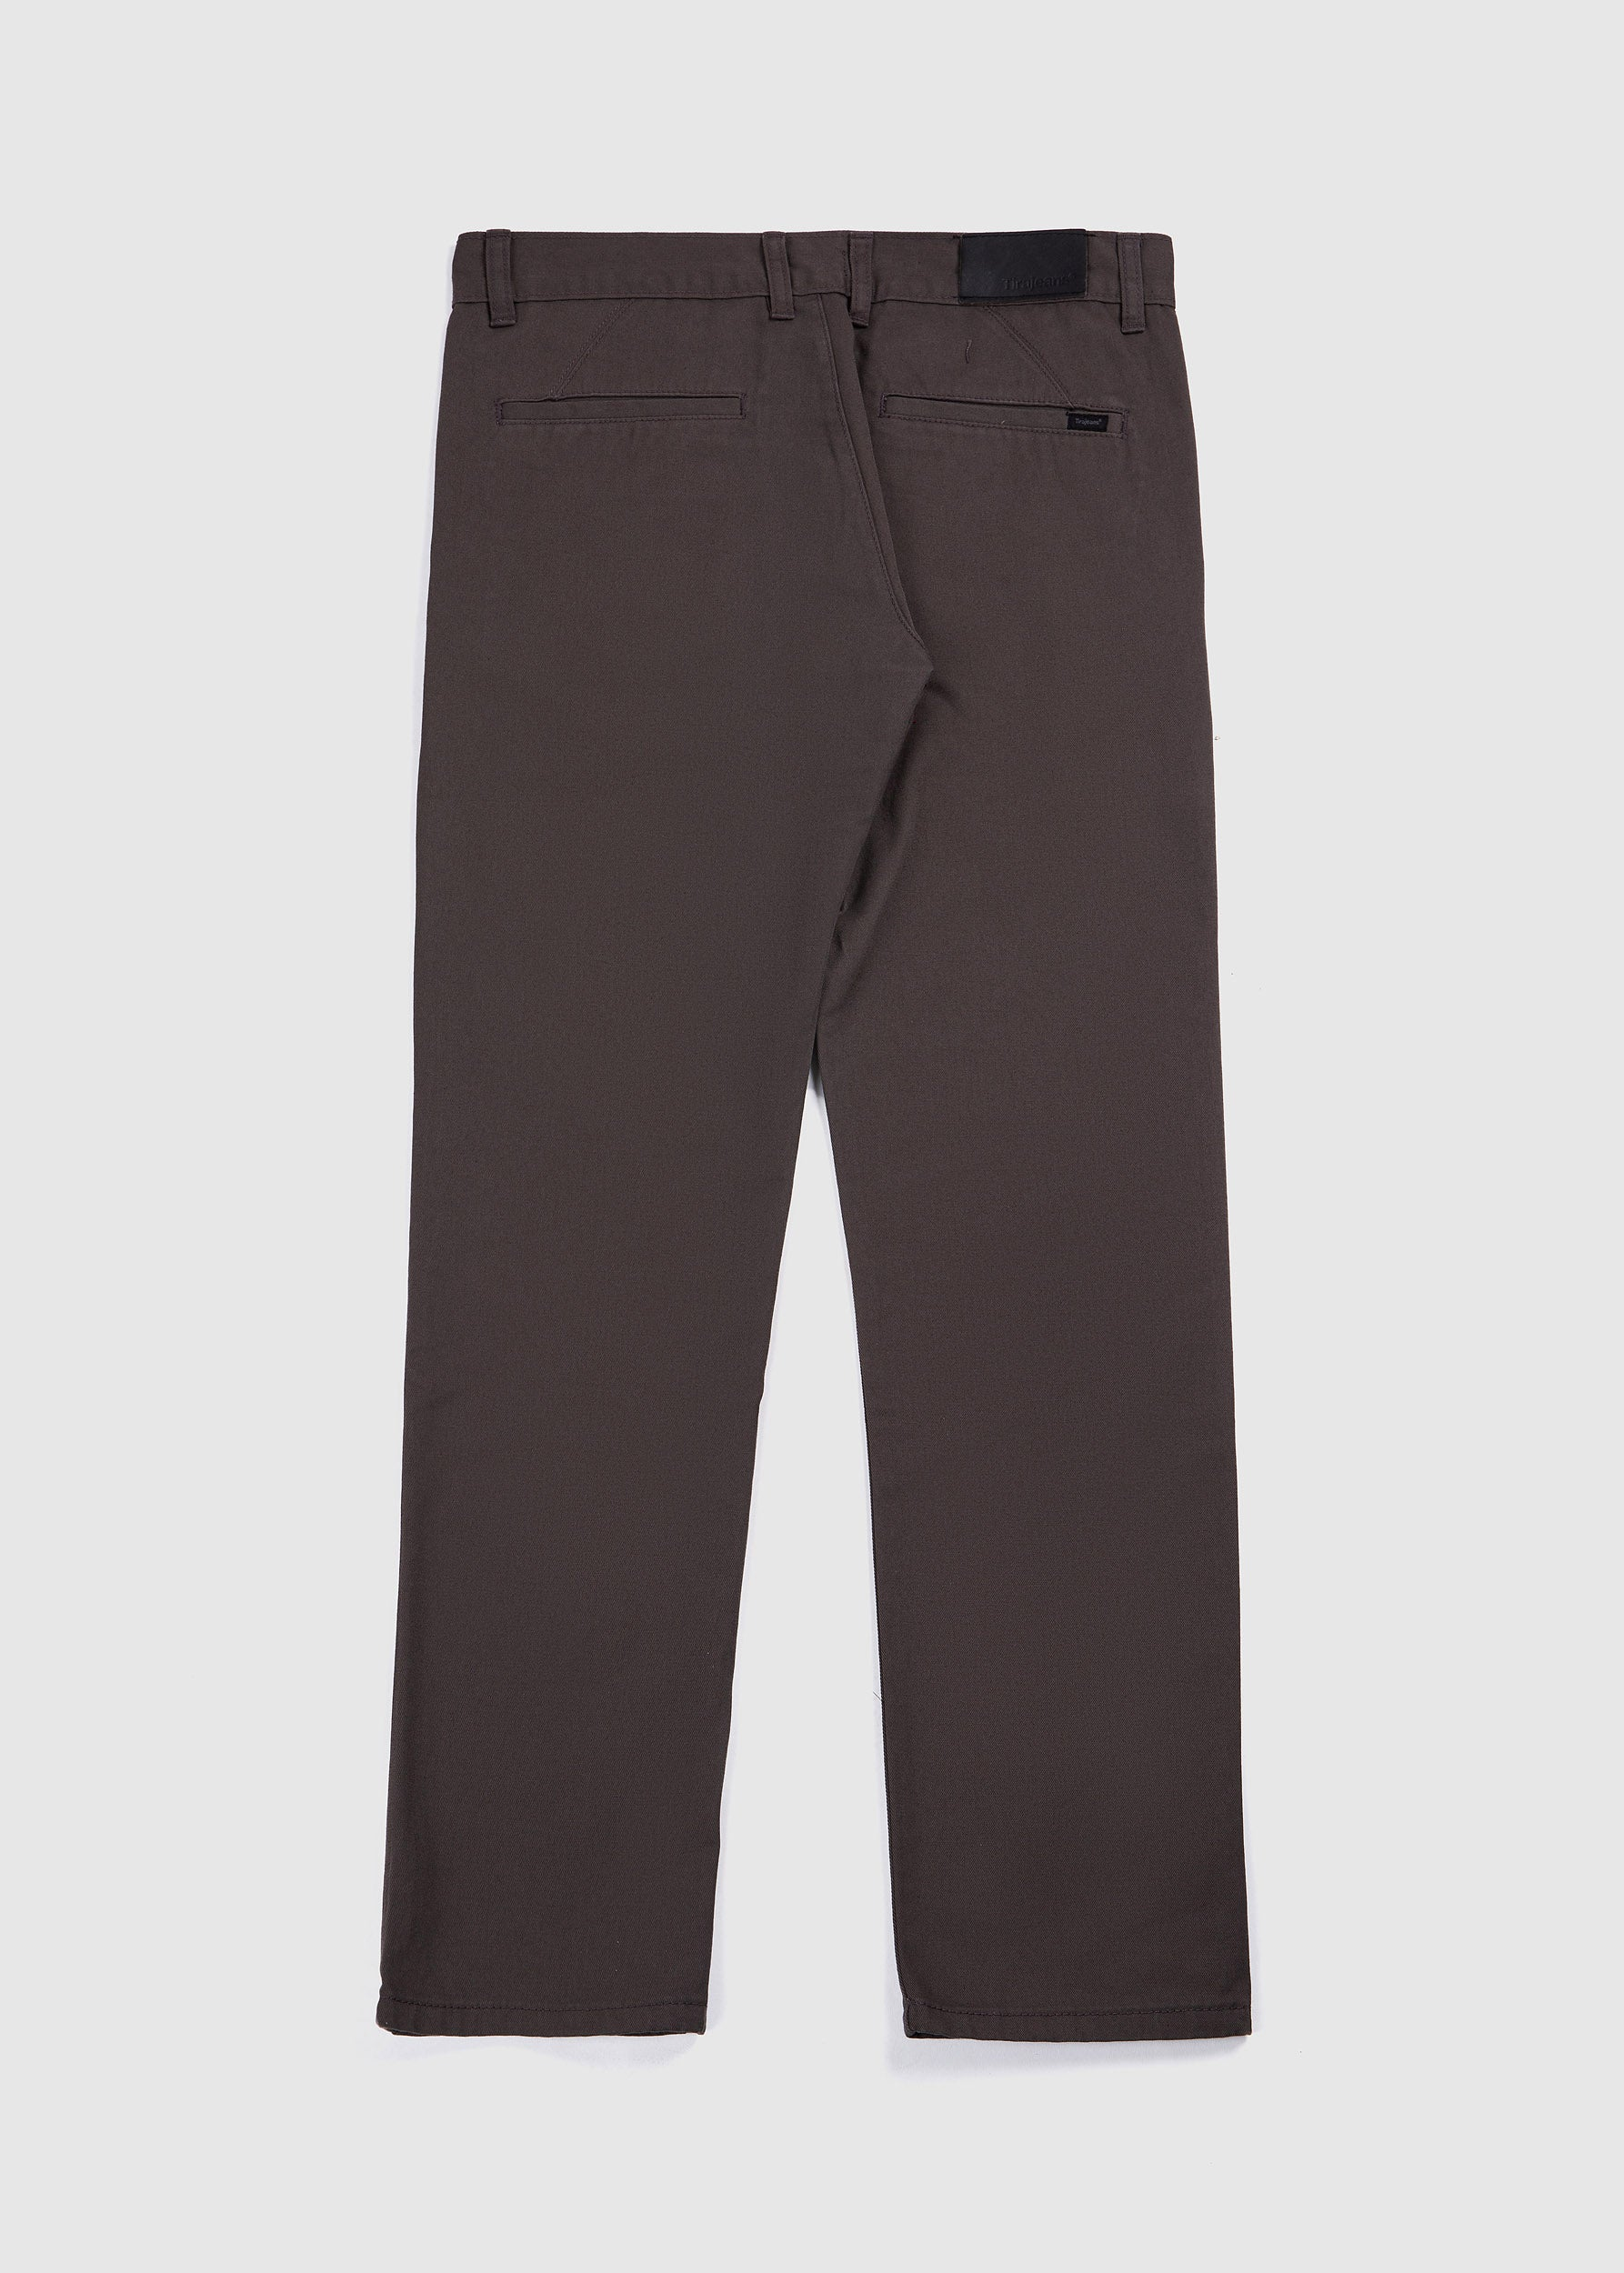 CHINO PANTS FIT 220 DARK GREY FW